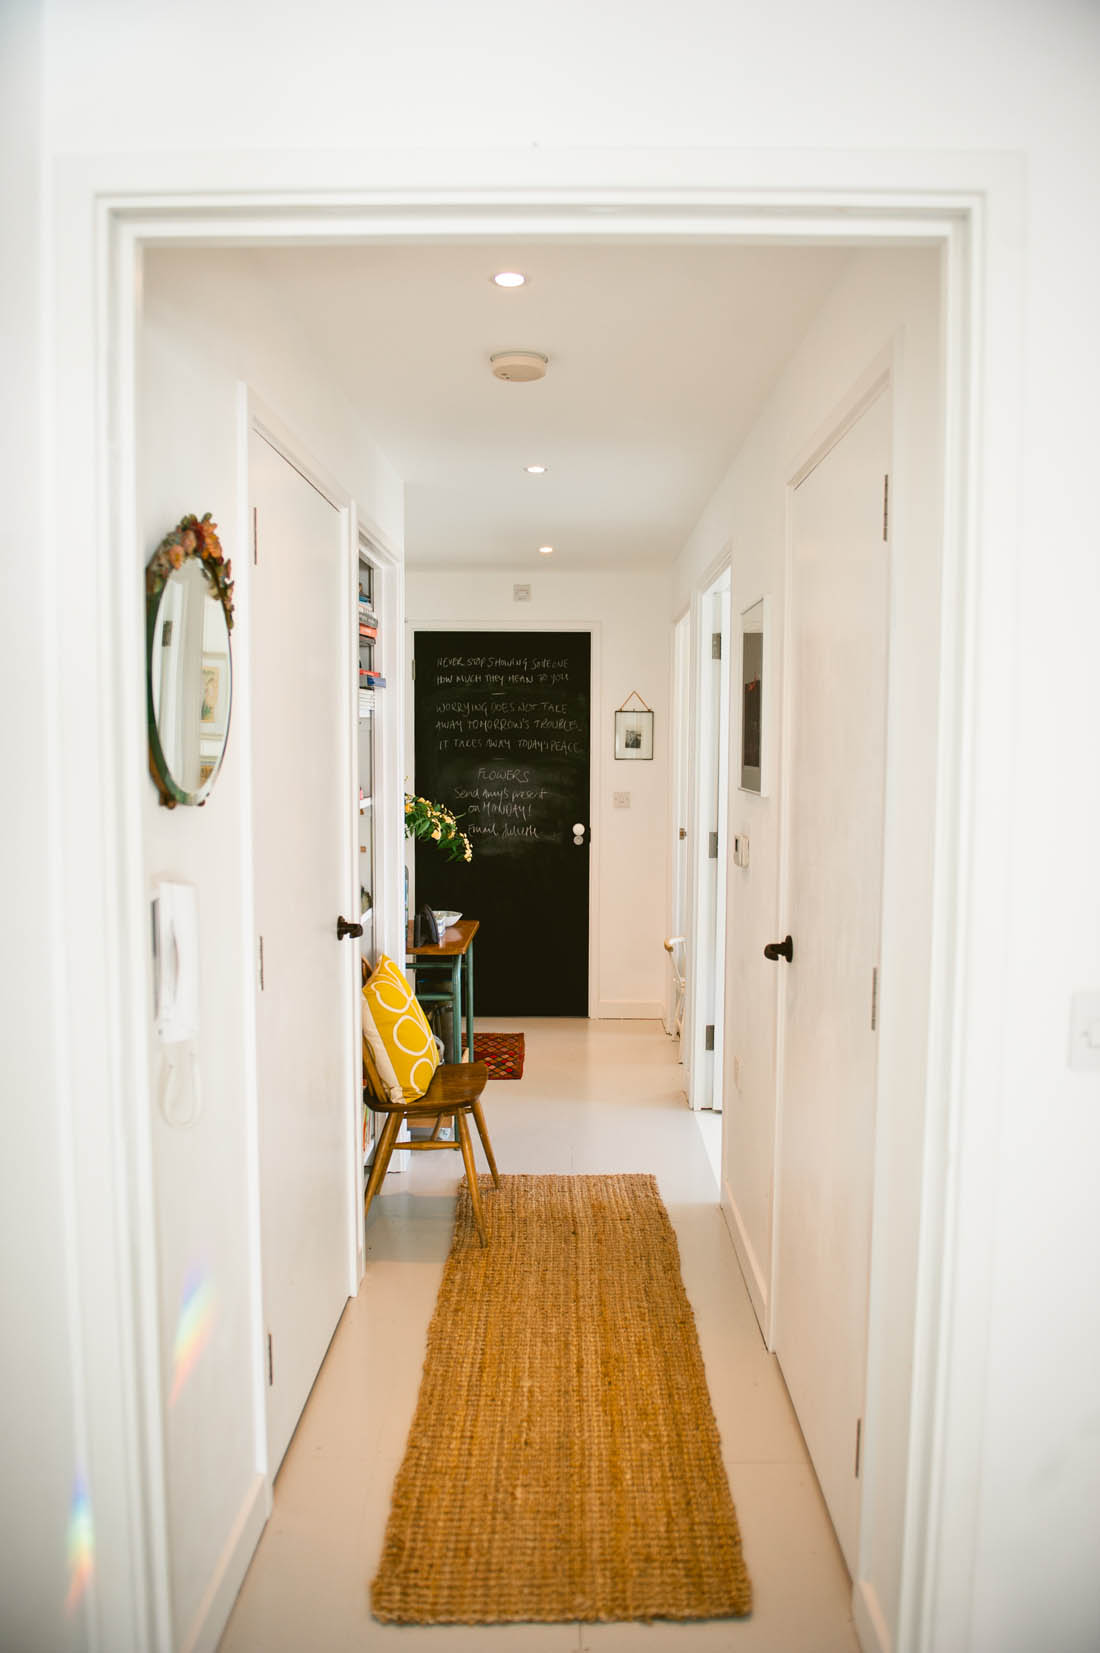 Five common lighting problems and how to solve them | Hallway lighting | Apartment Apothecary